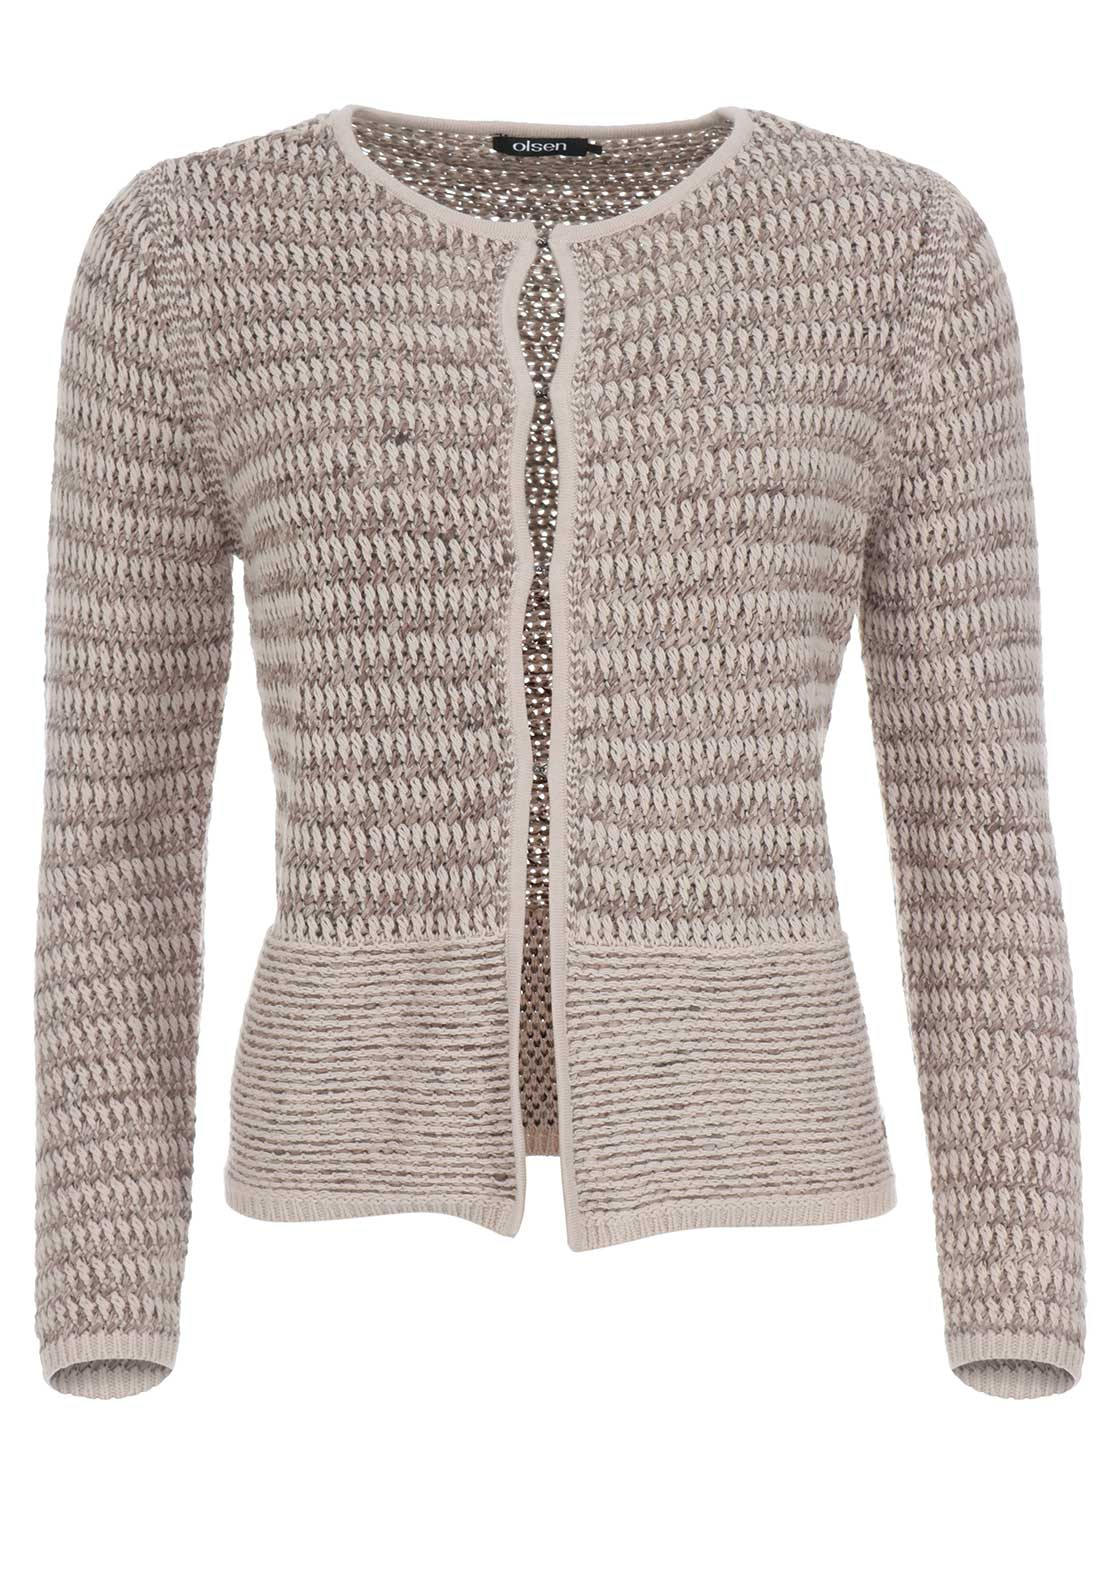 Olsen Woven Cotton Rich Cardigan, Taupe